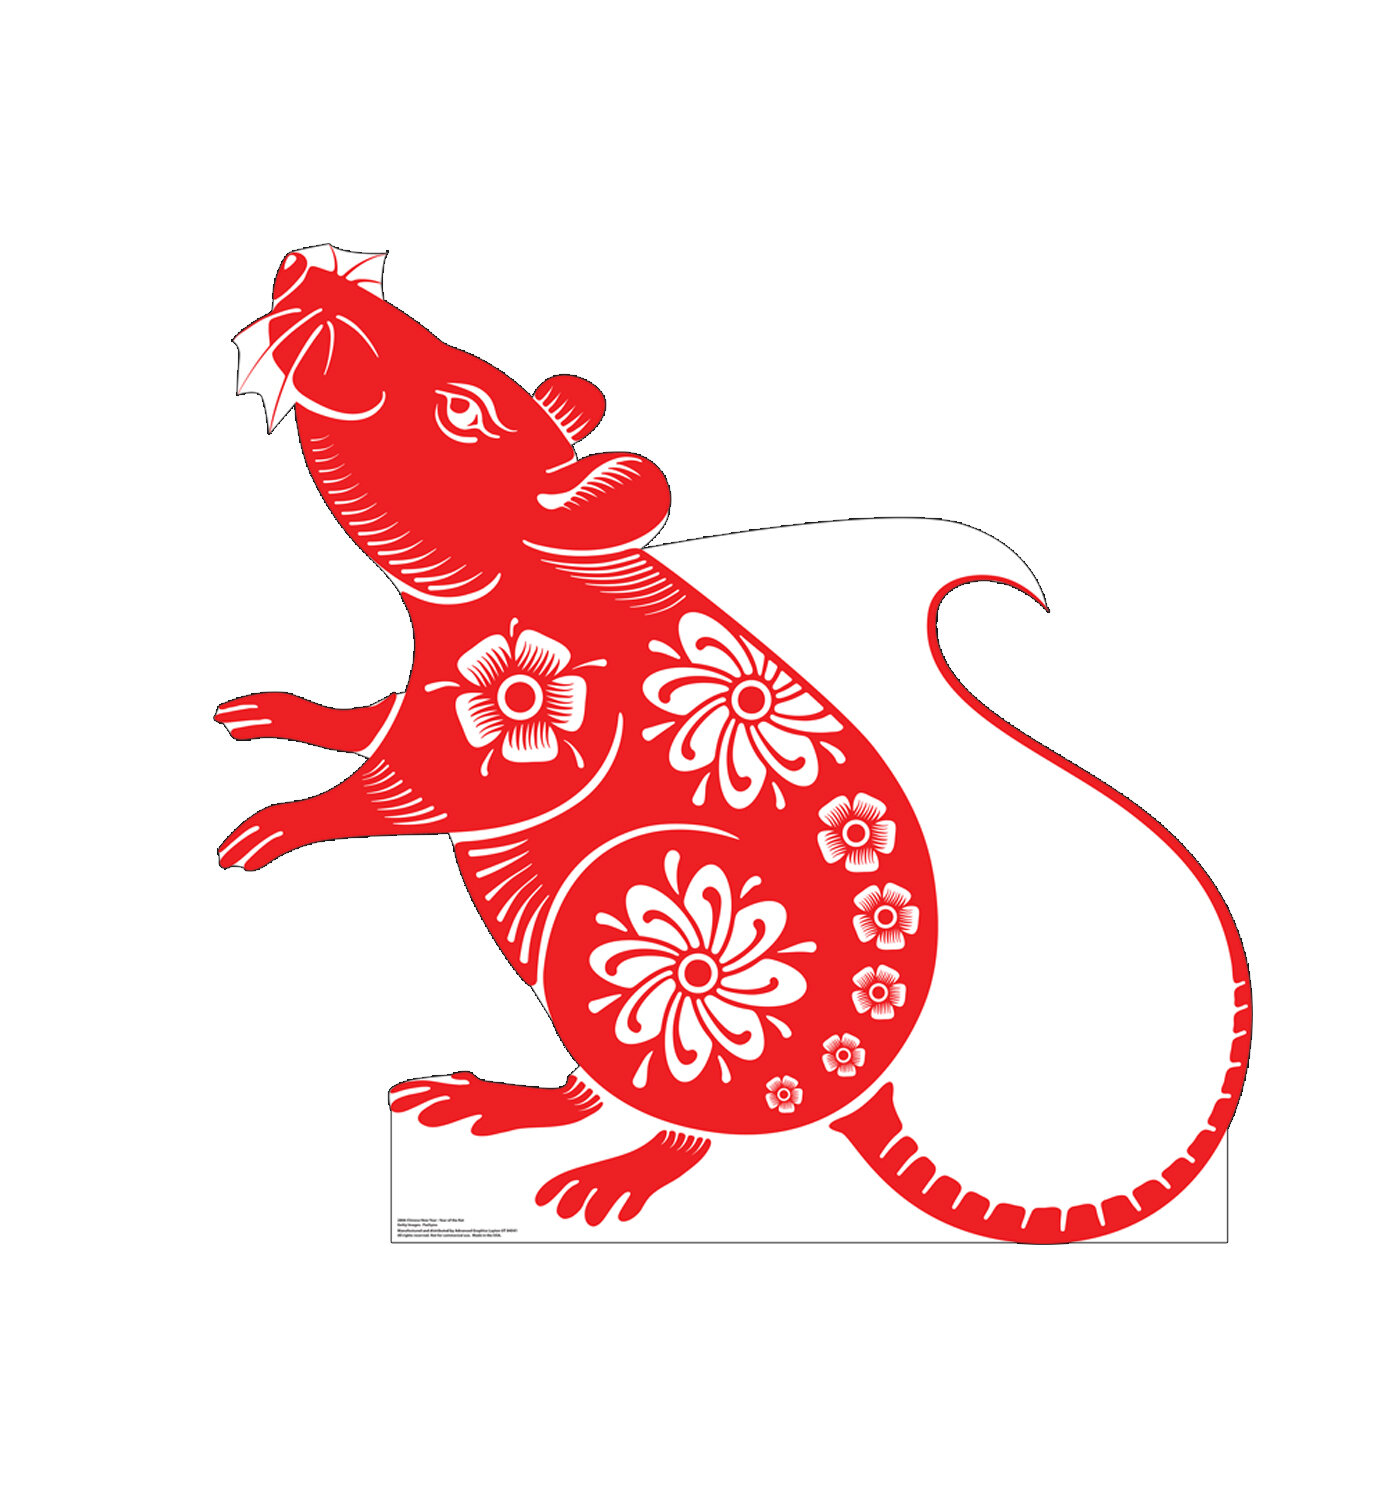 Chinese New Year 2020.Year Of The Rat Chinese New Year 2020 Cardboard Standup